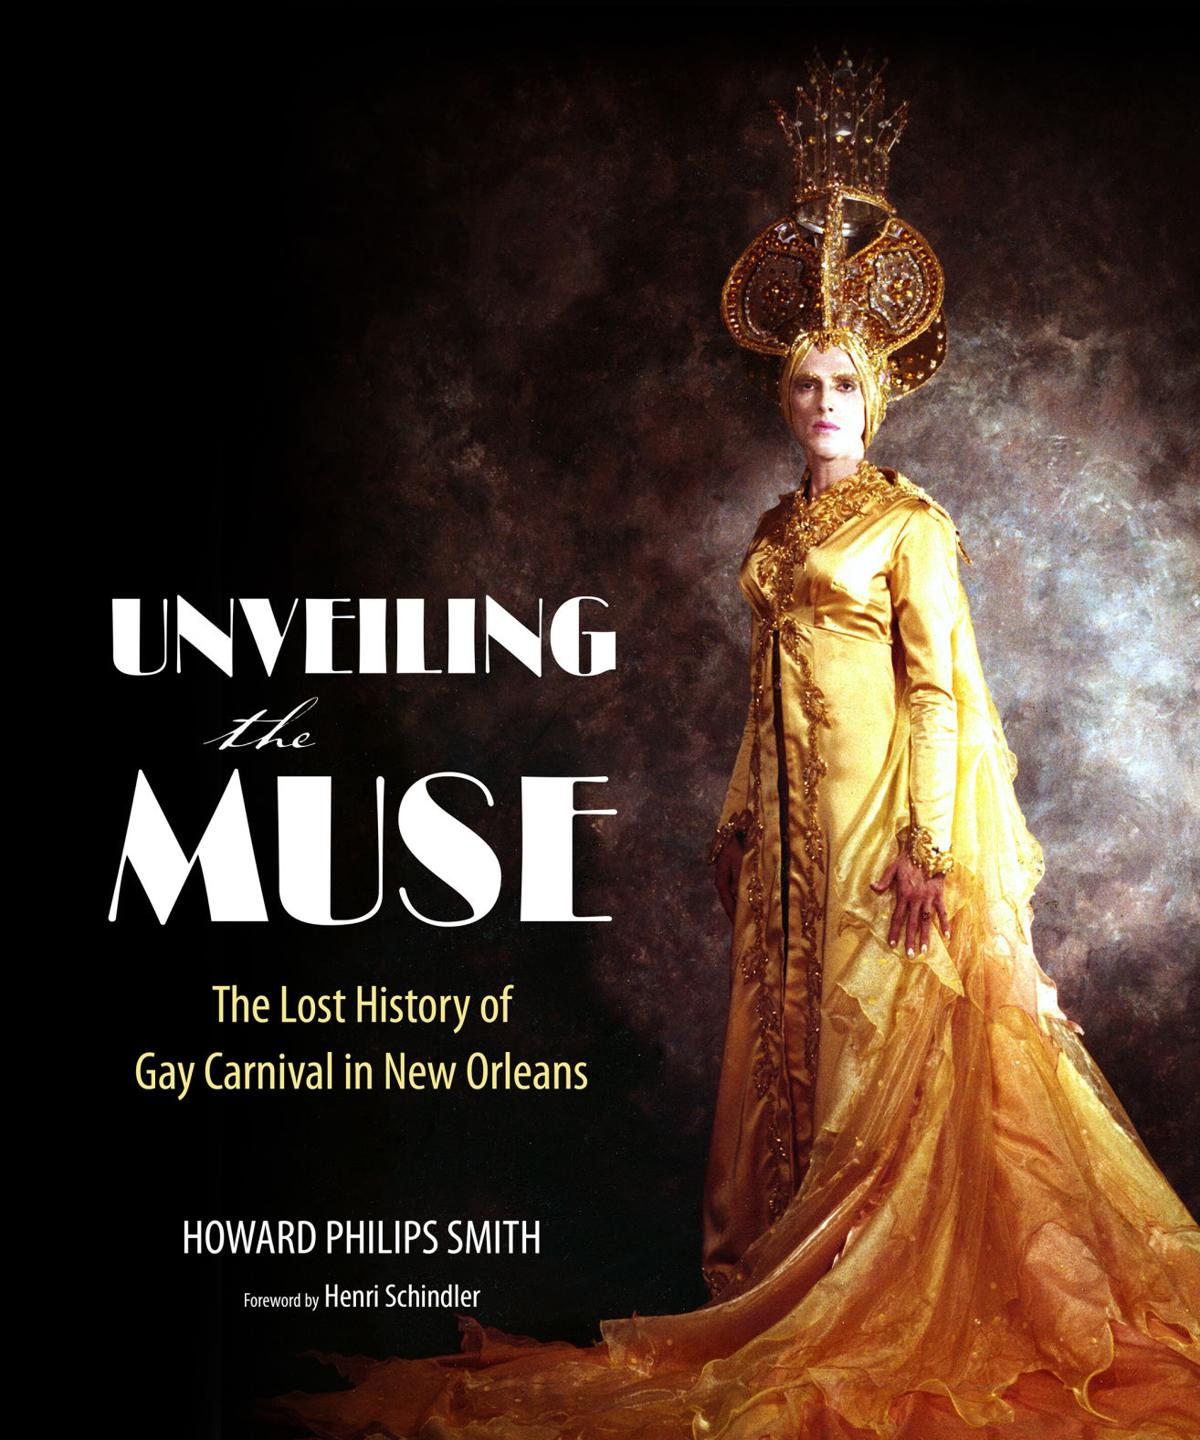 Unveiling the Muse book cover